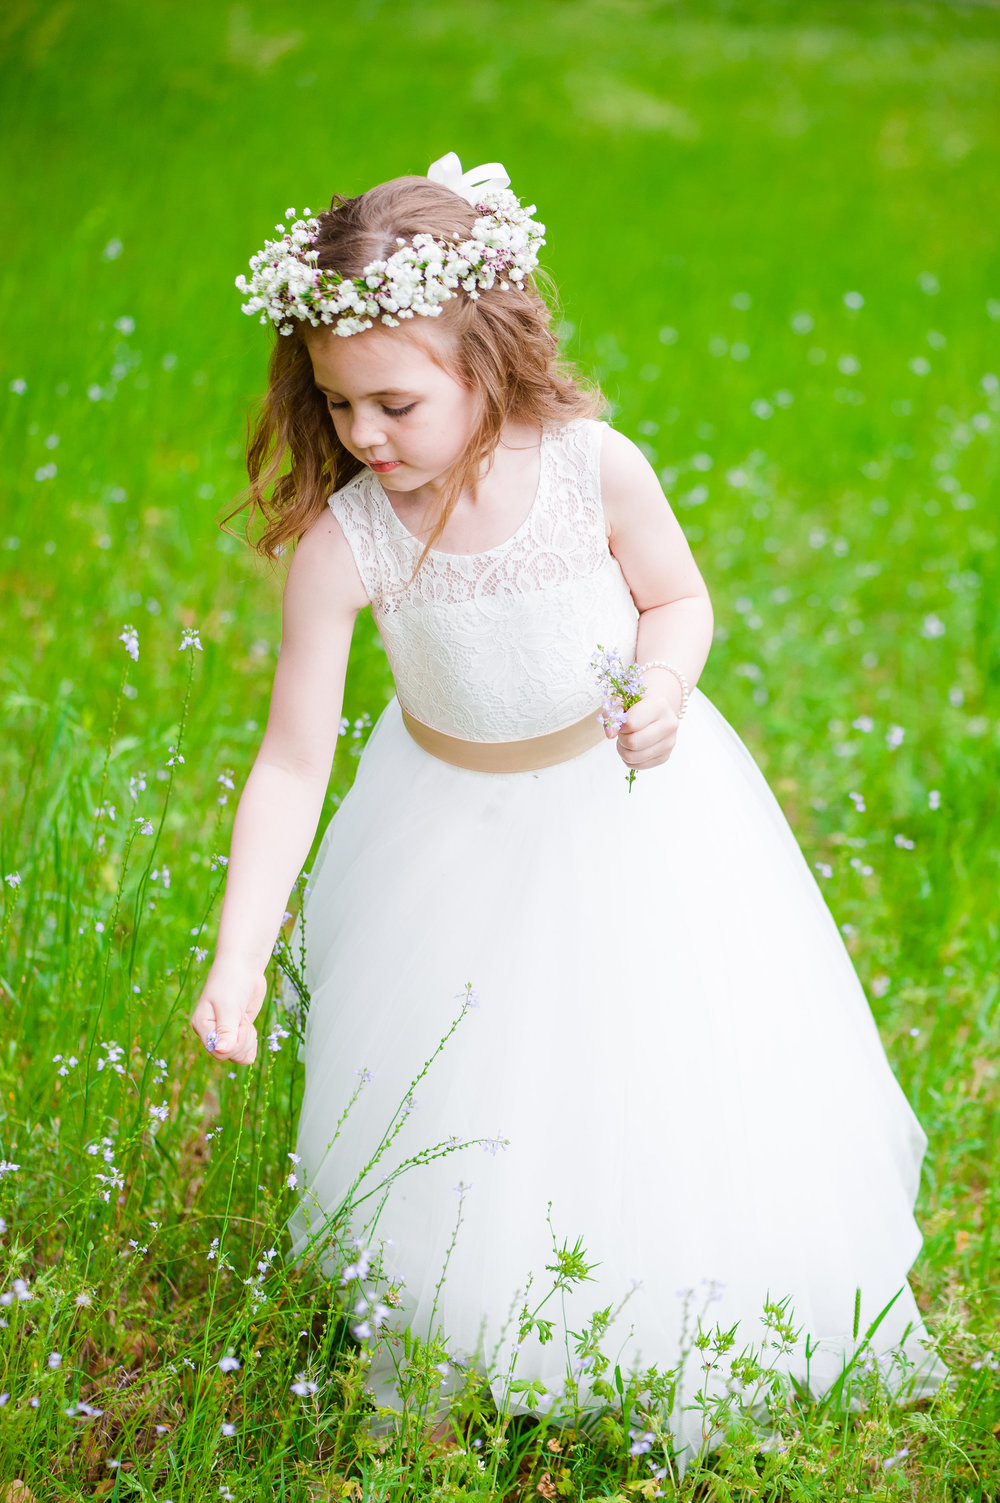 barn-wedding-tulle-flower-girl-dress-with-flower-halo-flower-crown-wildberry-farm-wedding-south-carolina